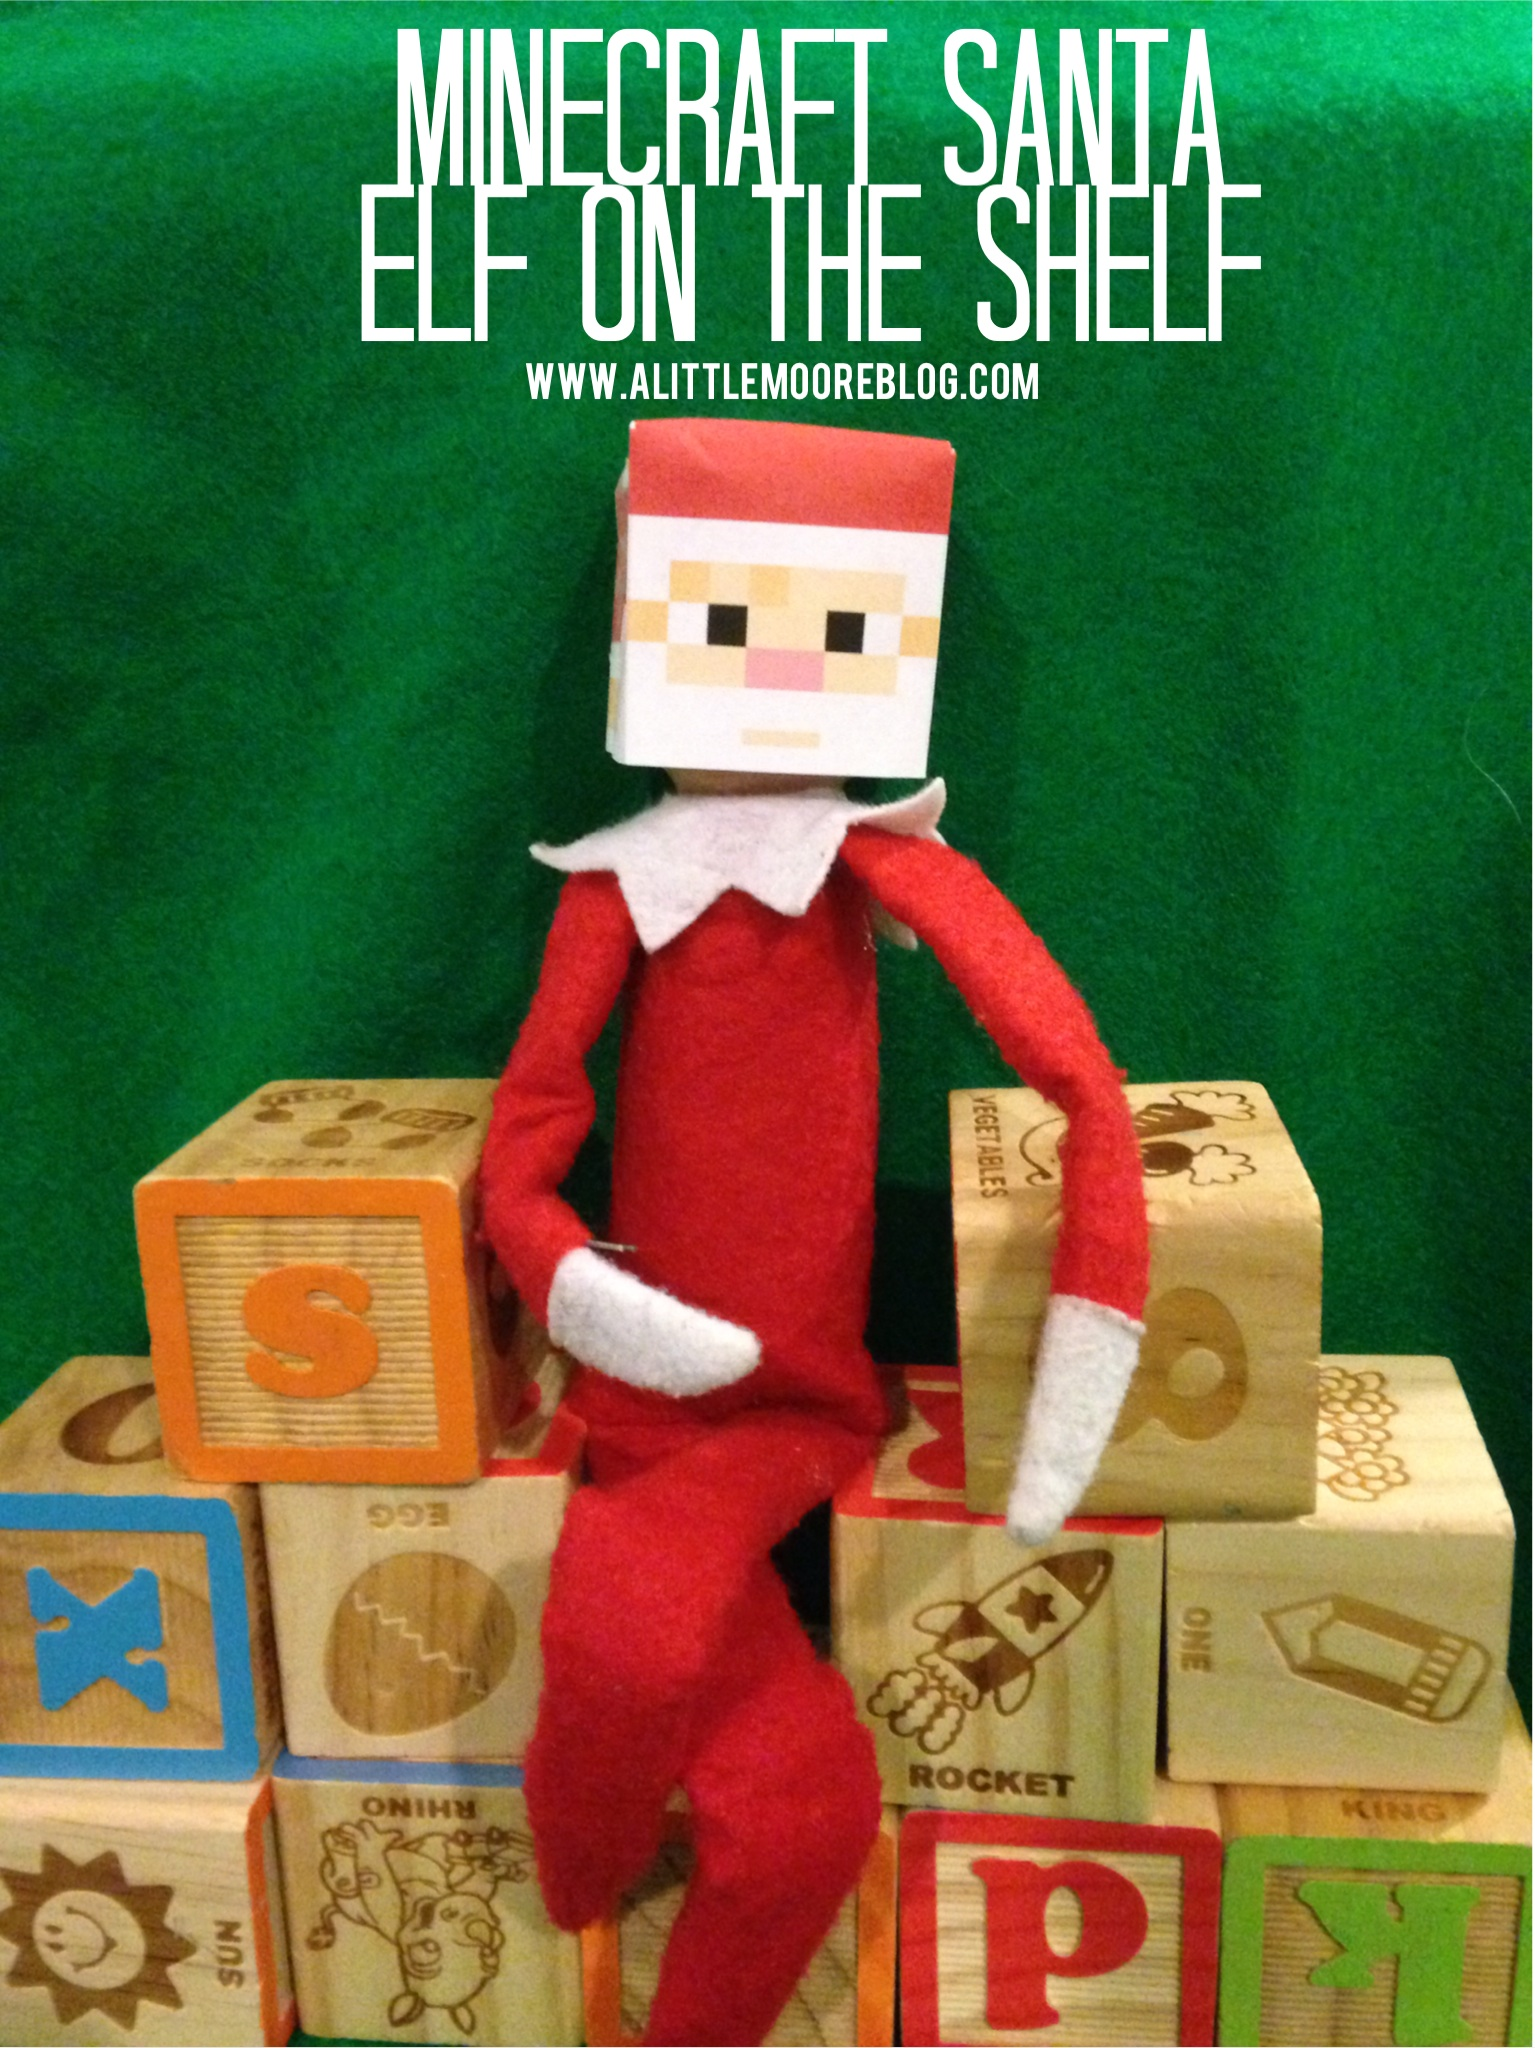 image about Minecraft Masks Printable named Elf upon the Shelf: Mine Craft Santa and Absolutely free Printable - A